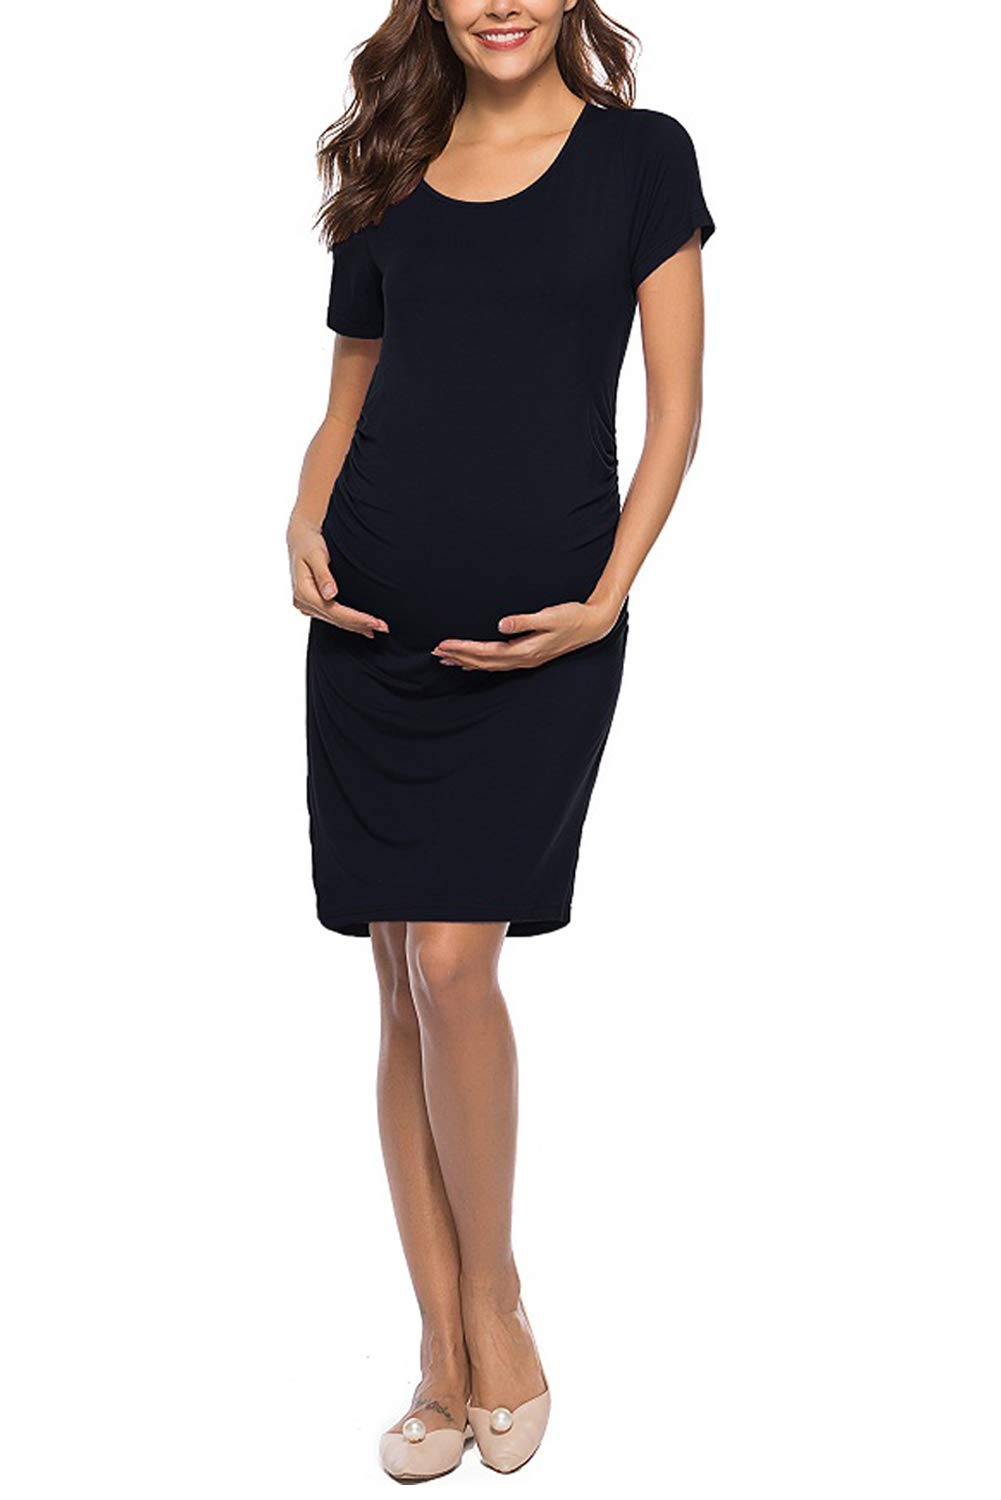 Short Sleeves Maternity Dress Bodycon Summer Casual Ruched Knee Length Pregnancy Dress Black L